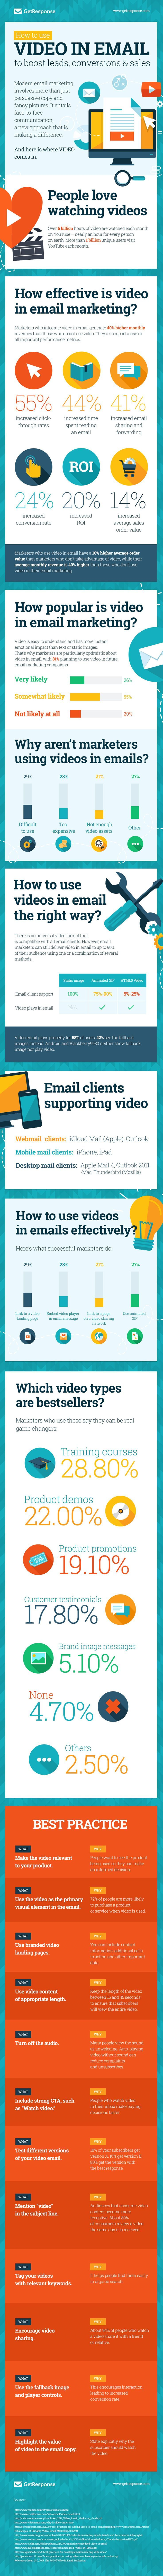 Video in Email Here is What You Need to Know